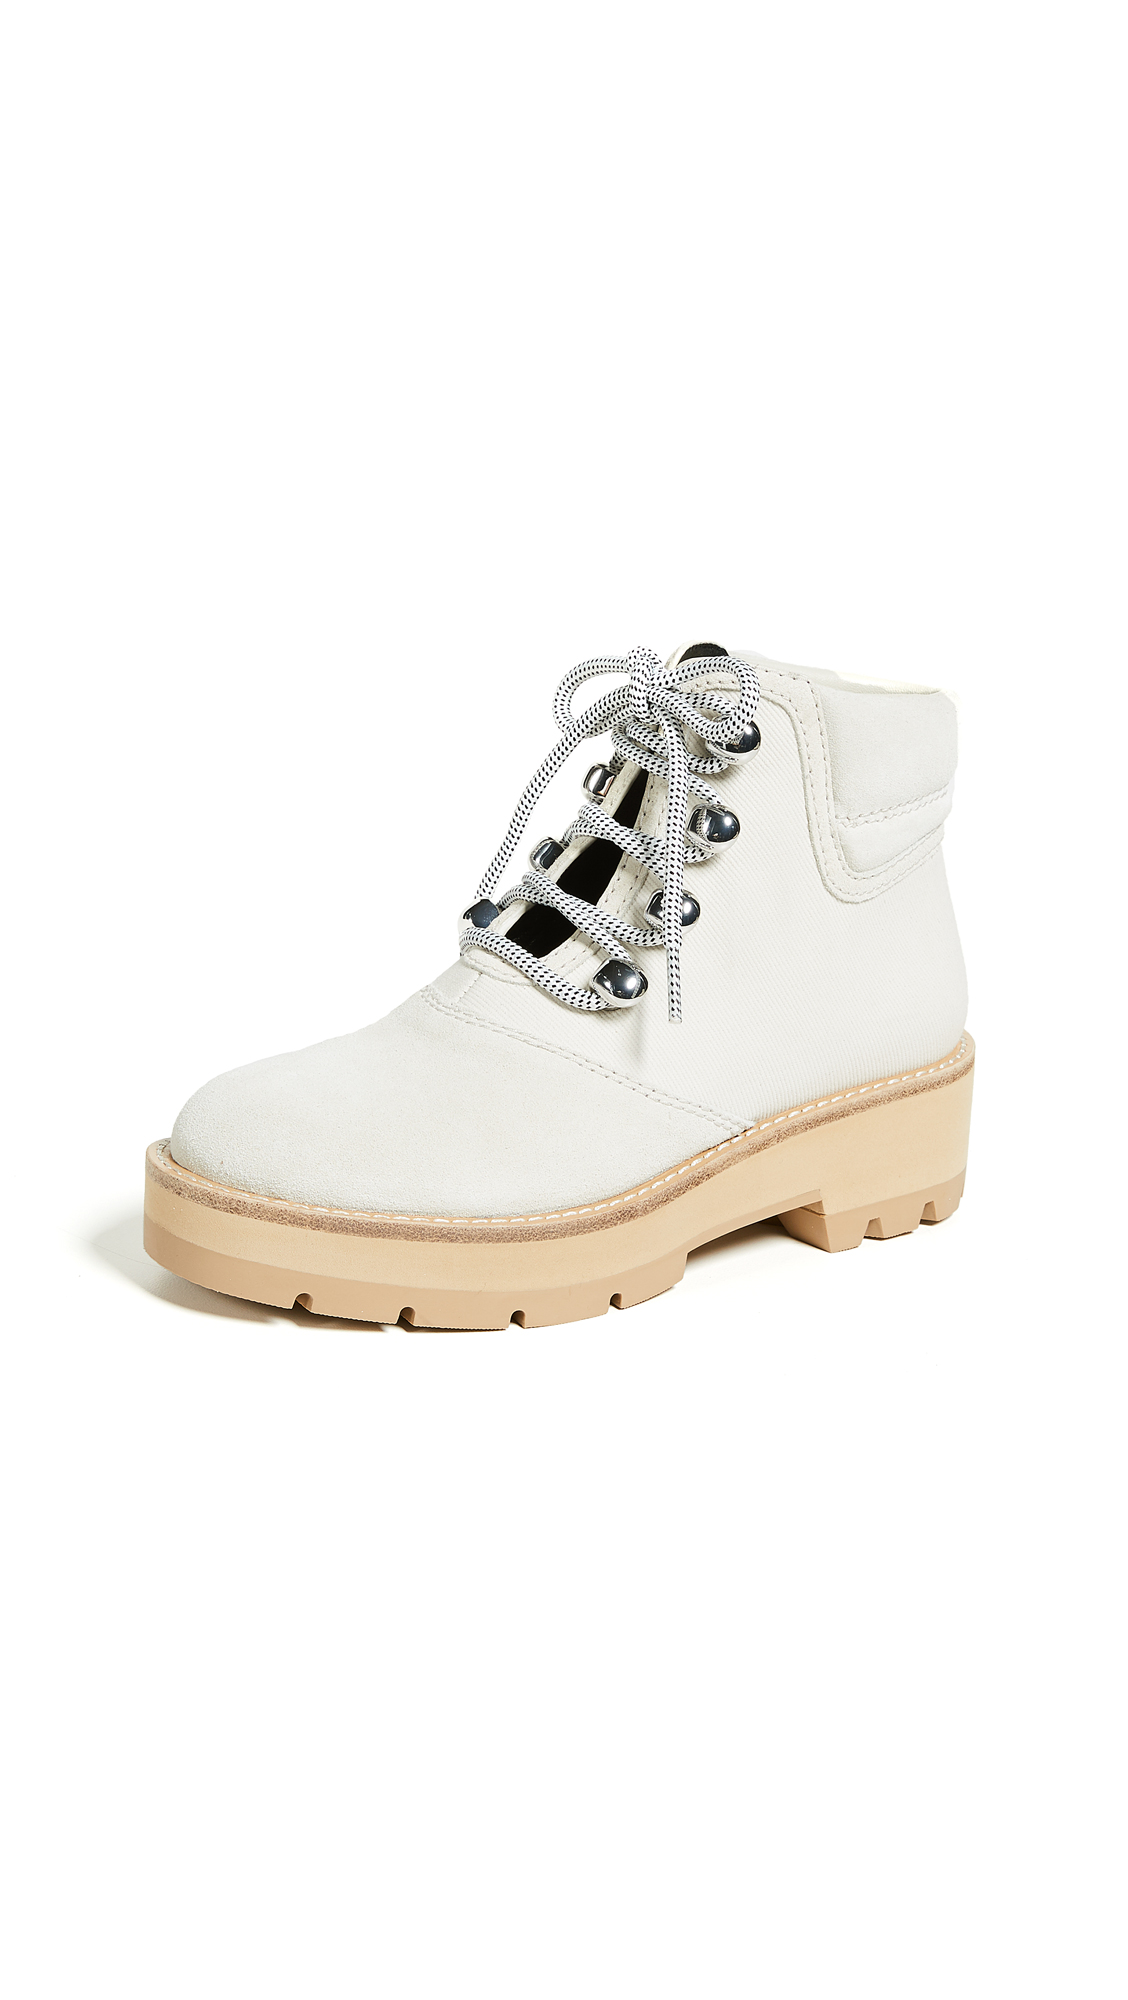 3.1 Phillip Lim Dylan Hiking Boots - Natural